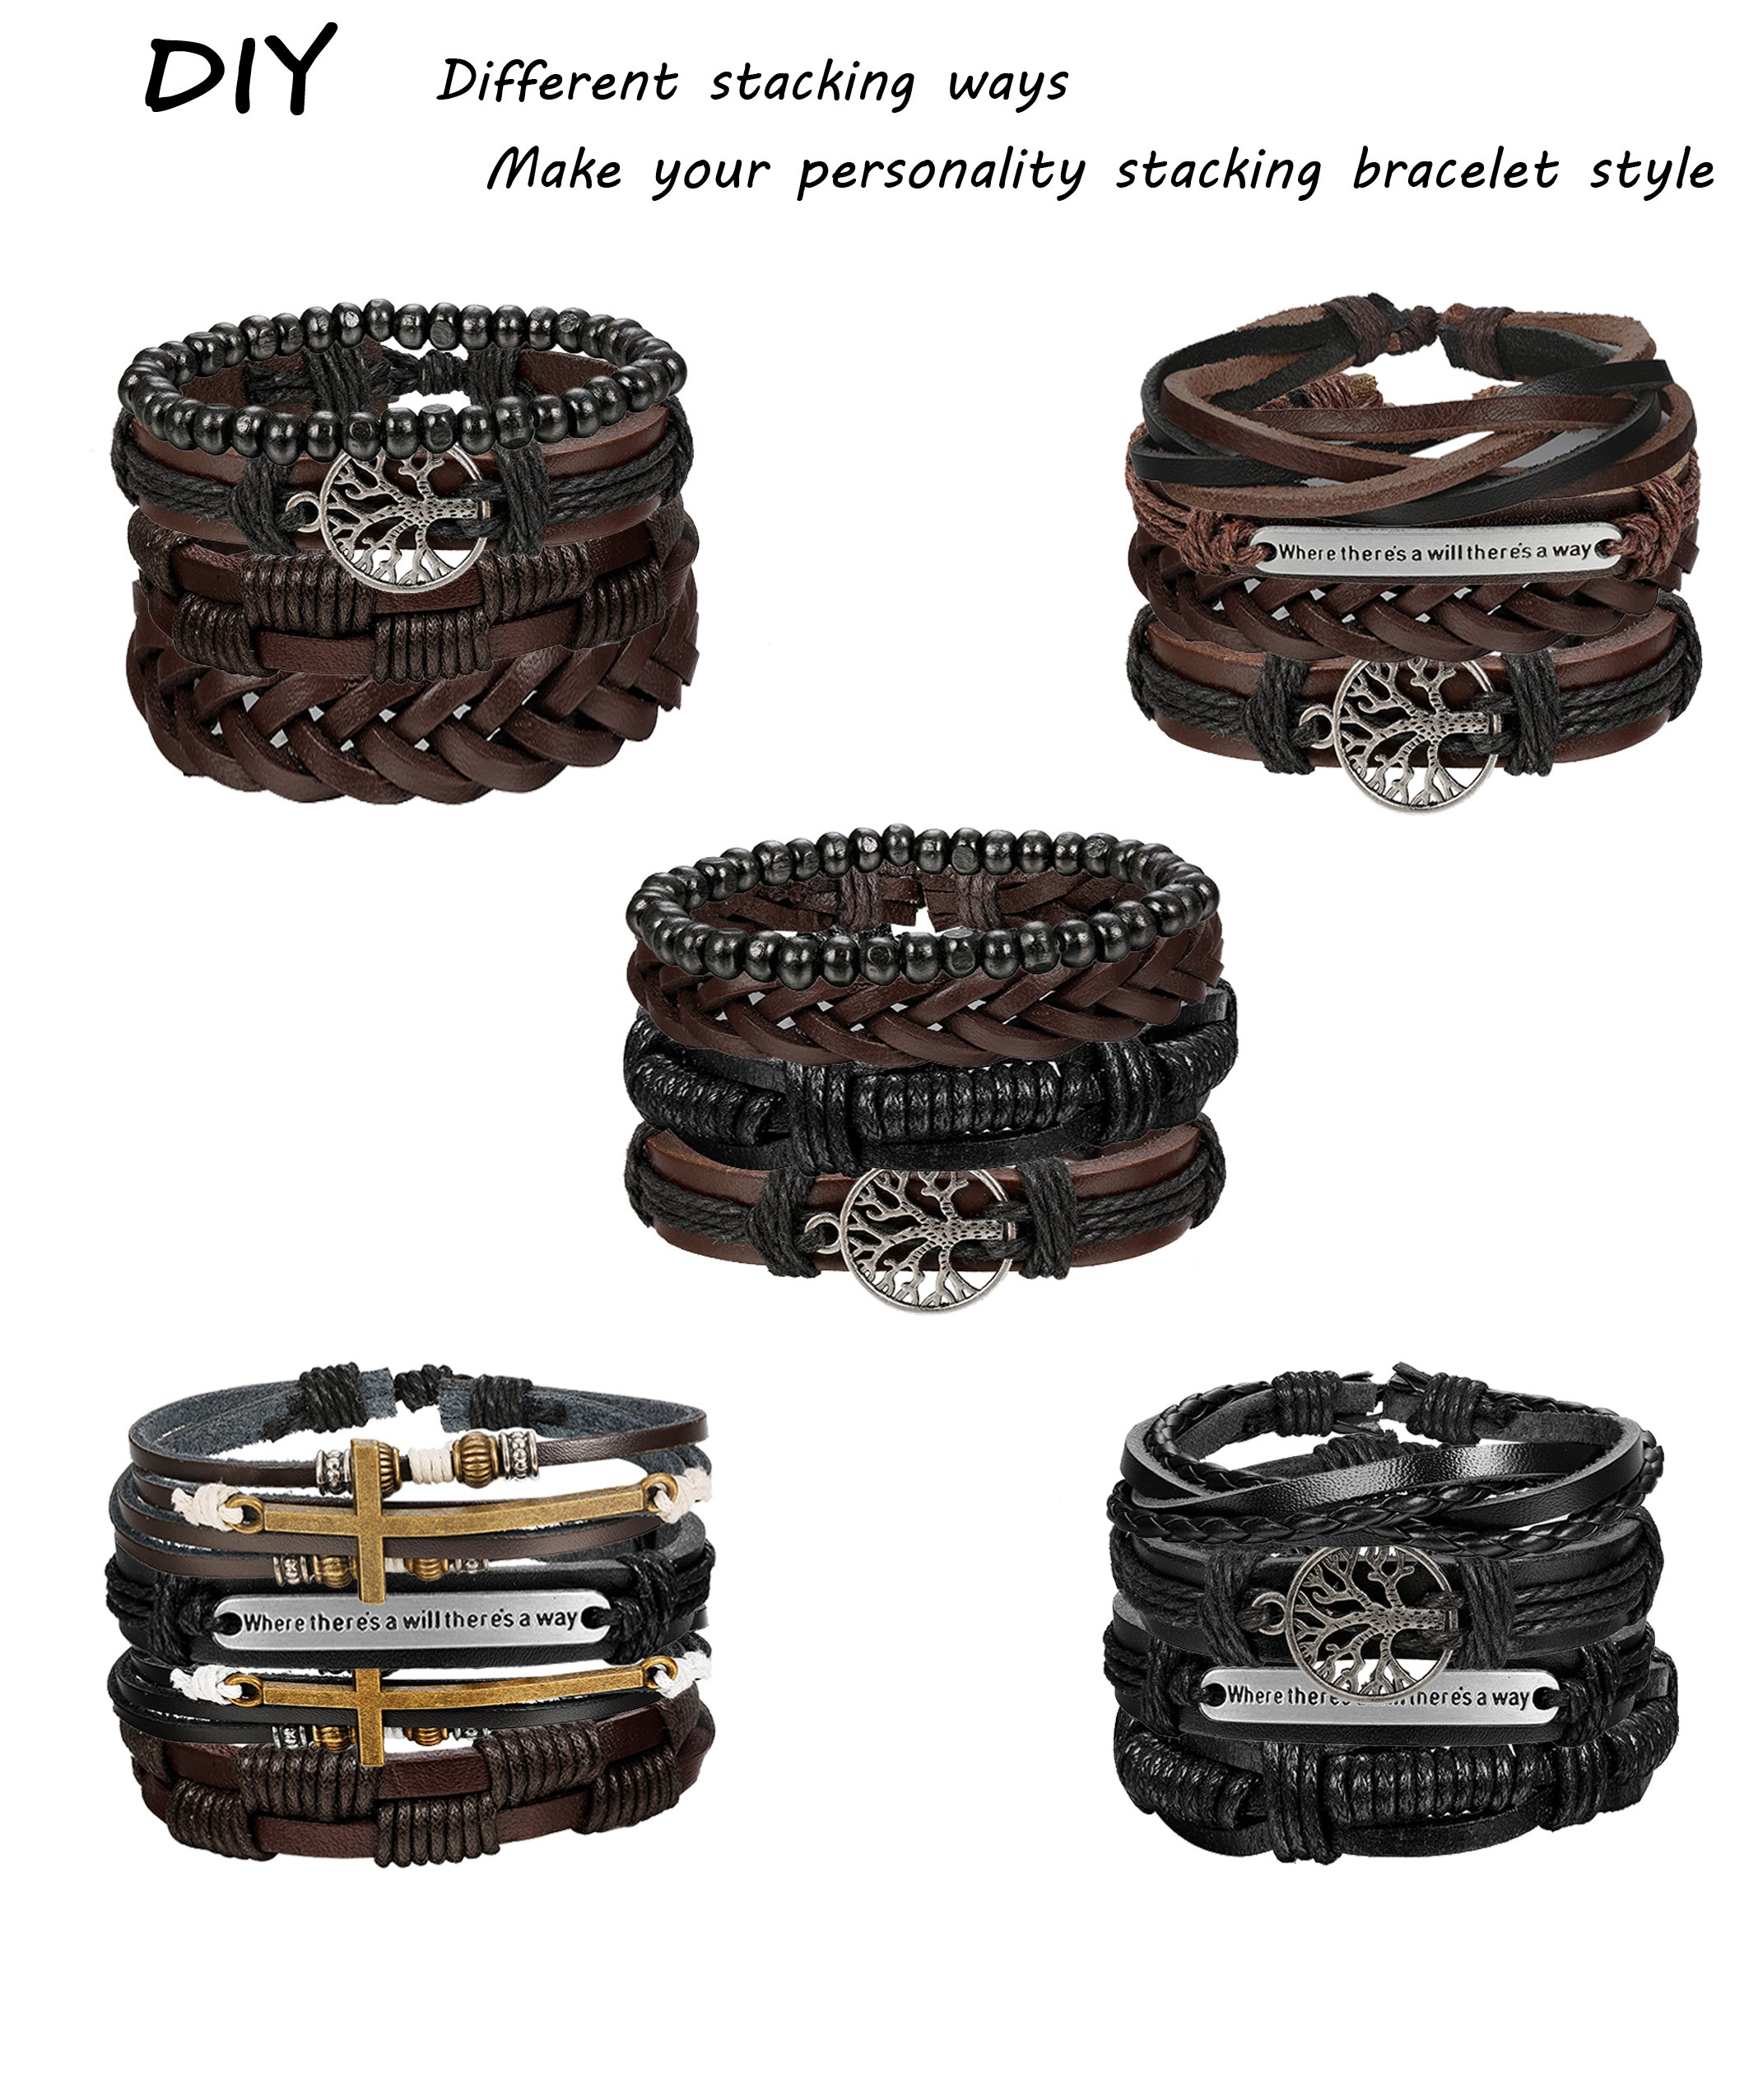 Milacolato 12Pcs Bracelets for Men Braided Leather Multilayer Wooden Beaded Cross Bracelet Leaf Wrist Cuff Wristband Adjustable by Milacolato (Image #3)